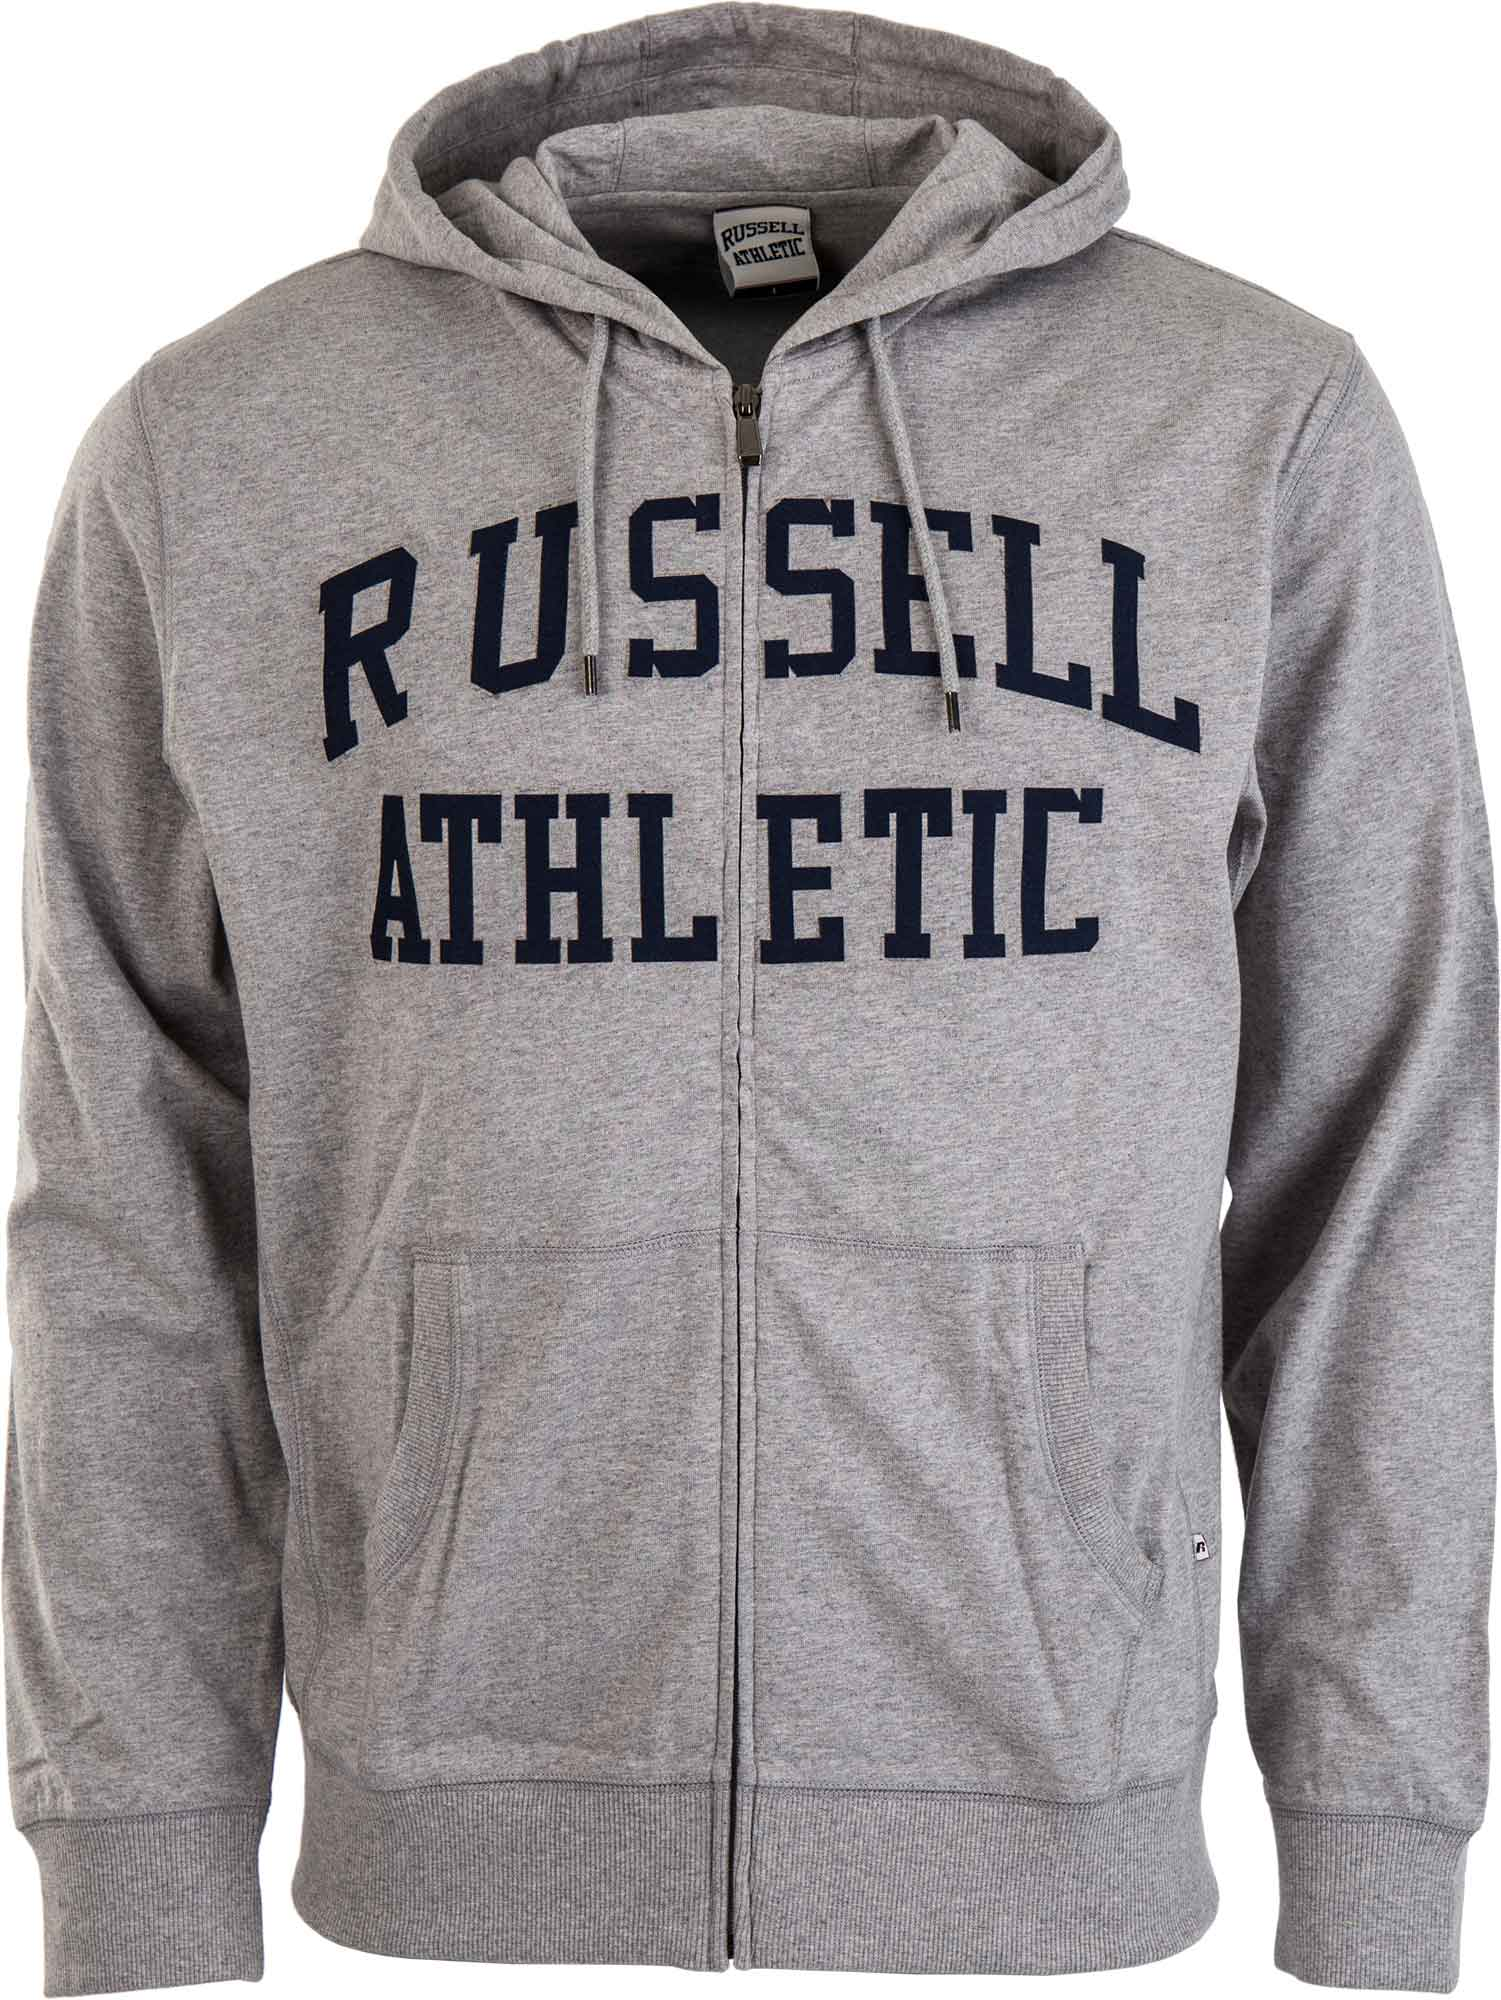 Russell Athletic TRANSFER PRINT HOODY FULL ZIP. Pánská mikina. Pánská mikina.  Pánská mikina. Pánská mikina 78ac6ec31bf